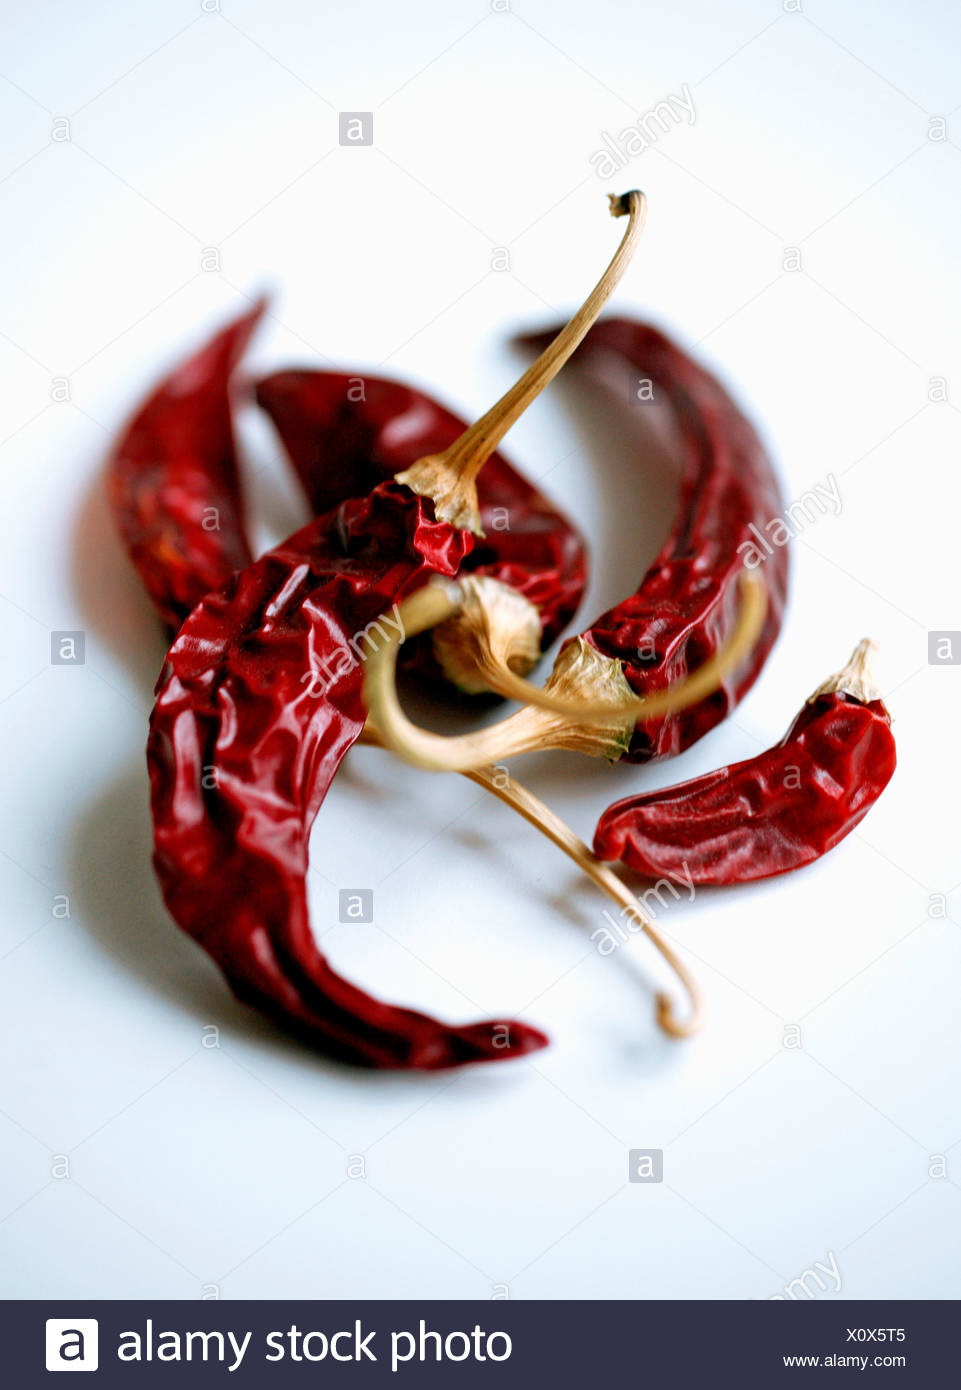 Chili peppers over white background - Stock Image